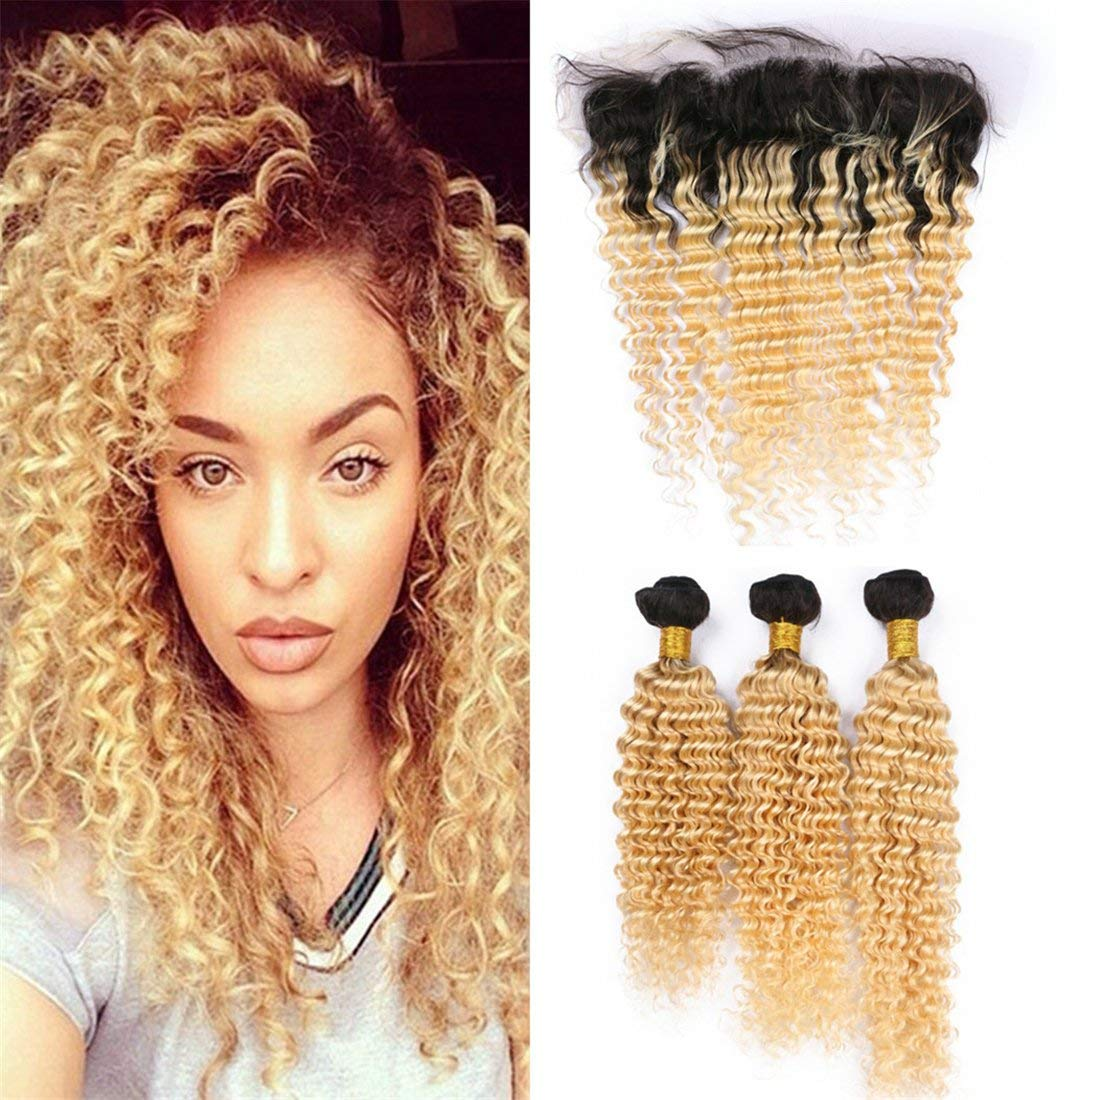 1B/613 Bleach Blonde Human Hair 3 Bundles with 13*4 Frontal Closure Deep Wave Unprocessed Brazilian Virgin Human Hair Sew in Extensions for Women Deep Wave Hair Weave - LetMeShine Hair